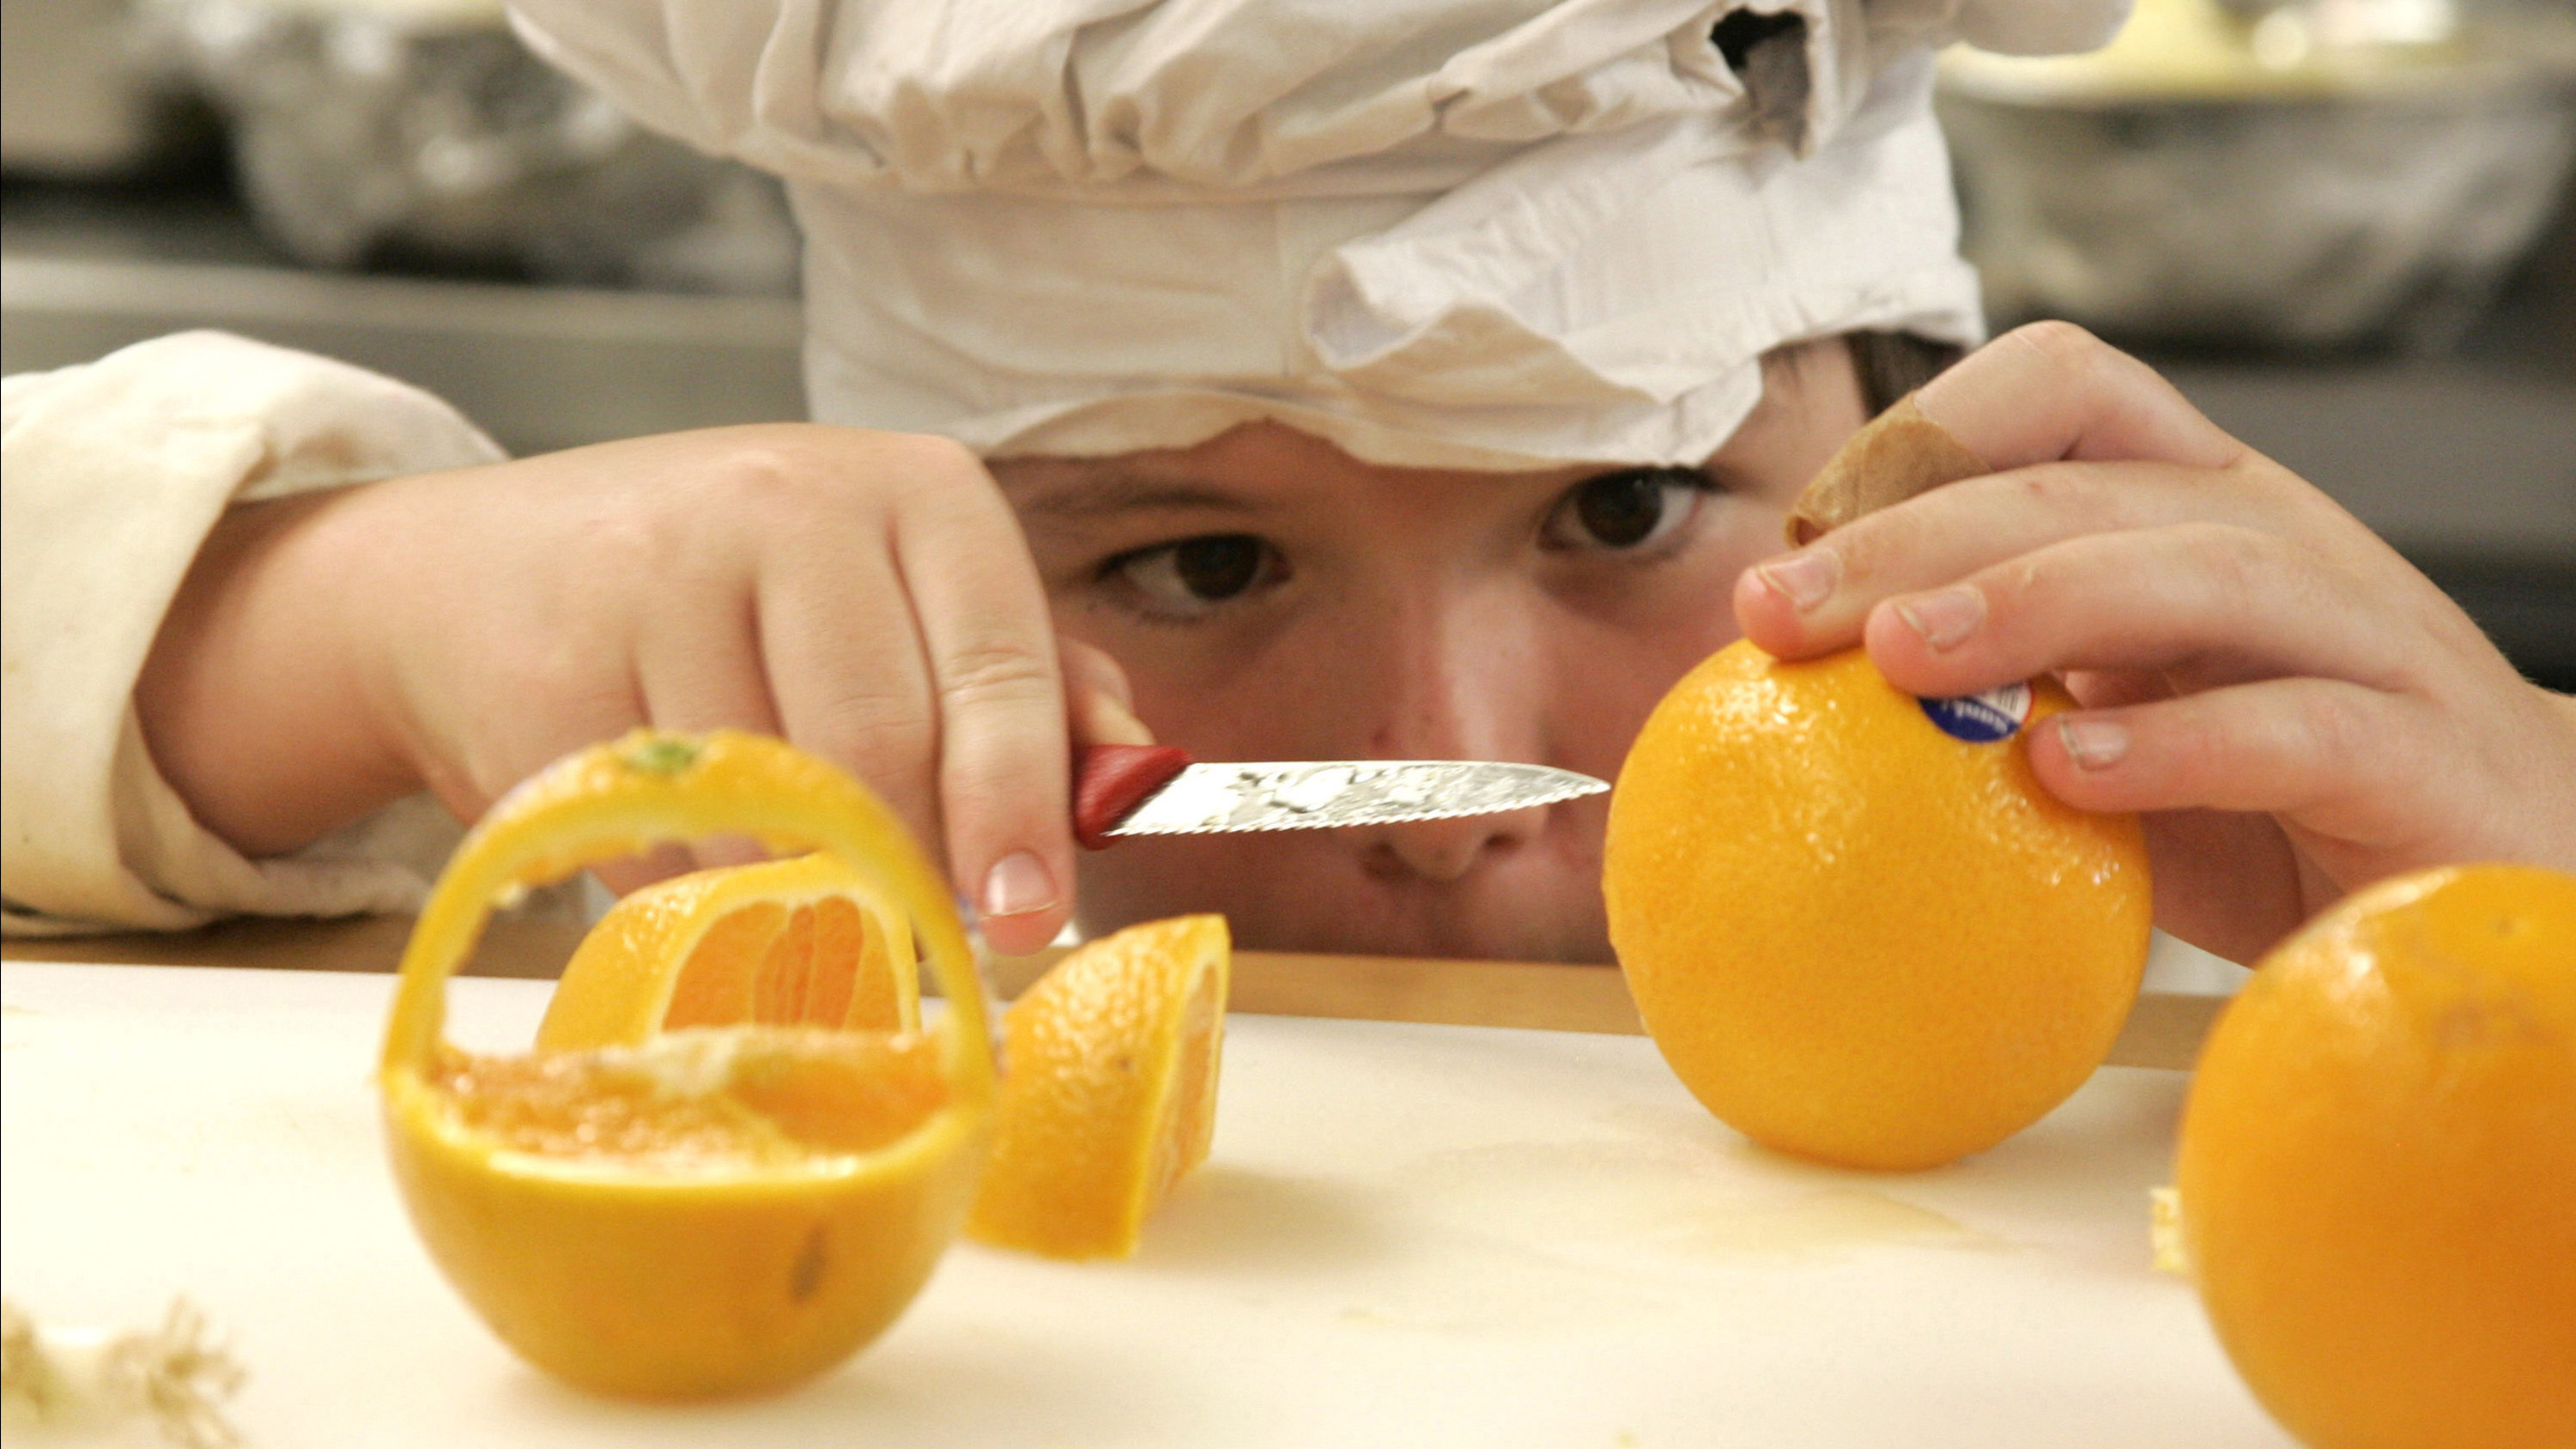 Zeke Andreassen, 11, cuts an orange into a decorative basket  in the kitchen of the Vermont Kids Culinary Academy during a residential cooking summer camp in Highgate, Vermont June 19, 2012. From high-wire walking to plankton propagation to posture lessons, summer camps †are offering an increasingly diverse range of activities compared to the canoe †trips, swim lessons and marshmallow-roasting of yore. The popularity of †alternative camps is helping fuel growth amongst the estimated 12,000 summer †camps in the United States. Despite the stagnant economy, revenues at day camps †grew by 23 percent between 2008 and last year and by 7 percent at sleepaway †camps, according to the American Camp Association, which says the 2,400 organized camps it accredits have combined annual revenues of $2.8 †billion. Picture taken June 19, 2012. To match Feature USA-CAMP/ REUTERS/Herb Swanson (UNITED STATES - Tags: FOOD SOCIETY TPX IMAGES OF THE DAY) - RTR346RA